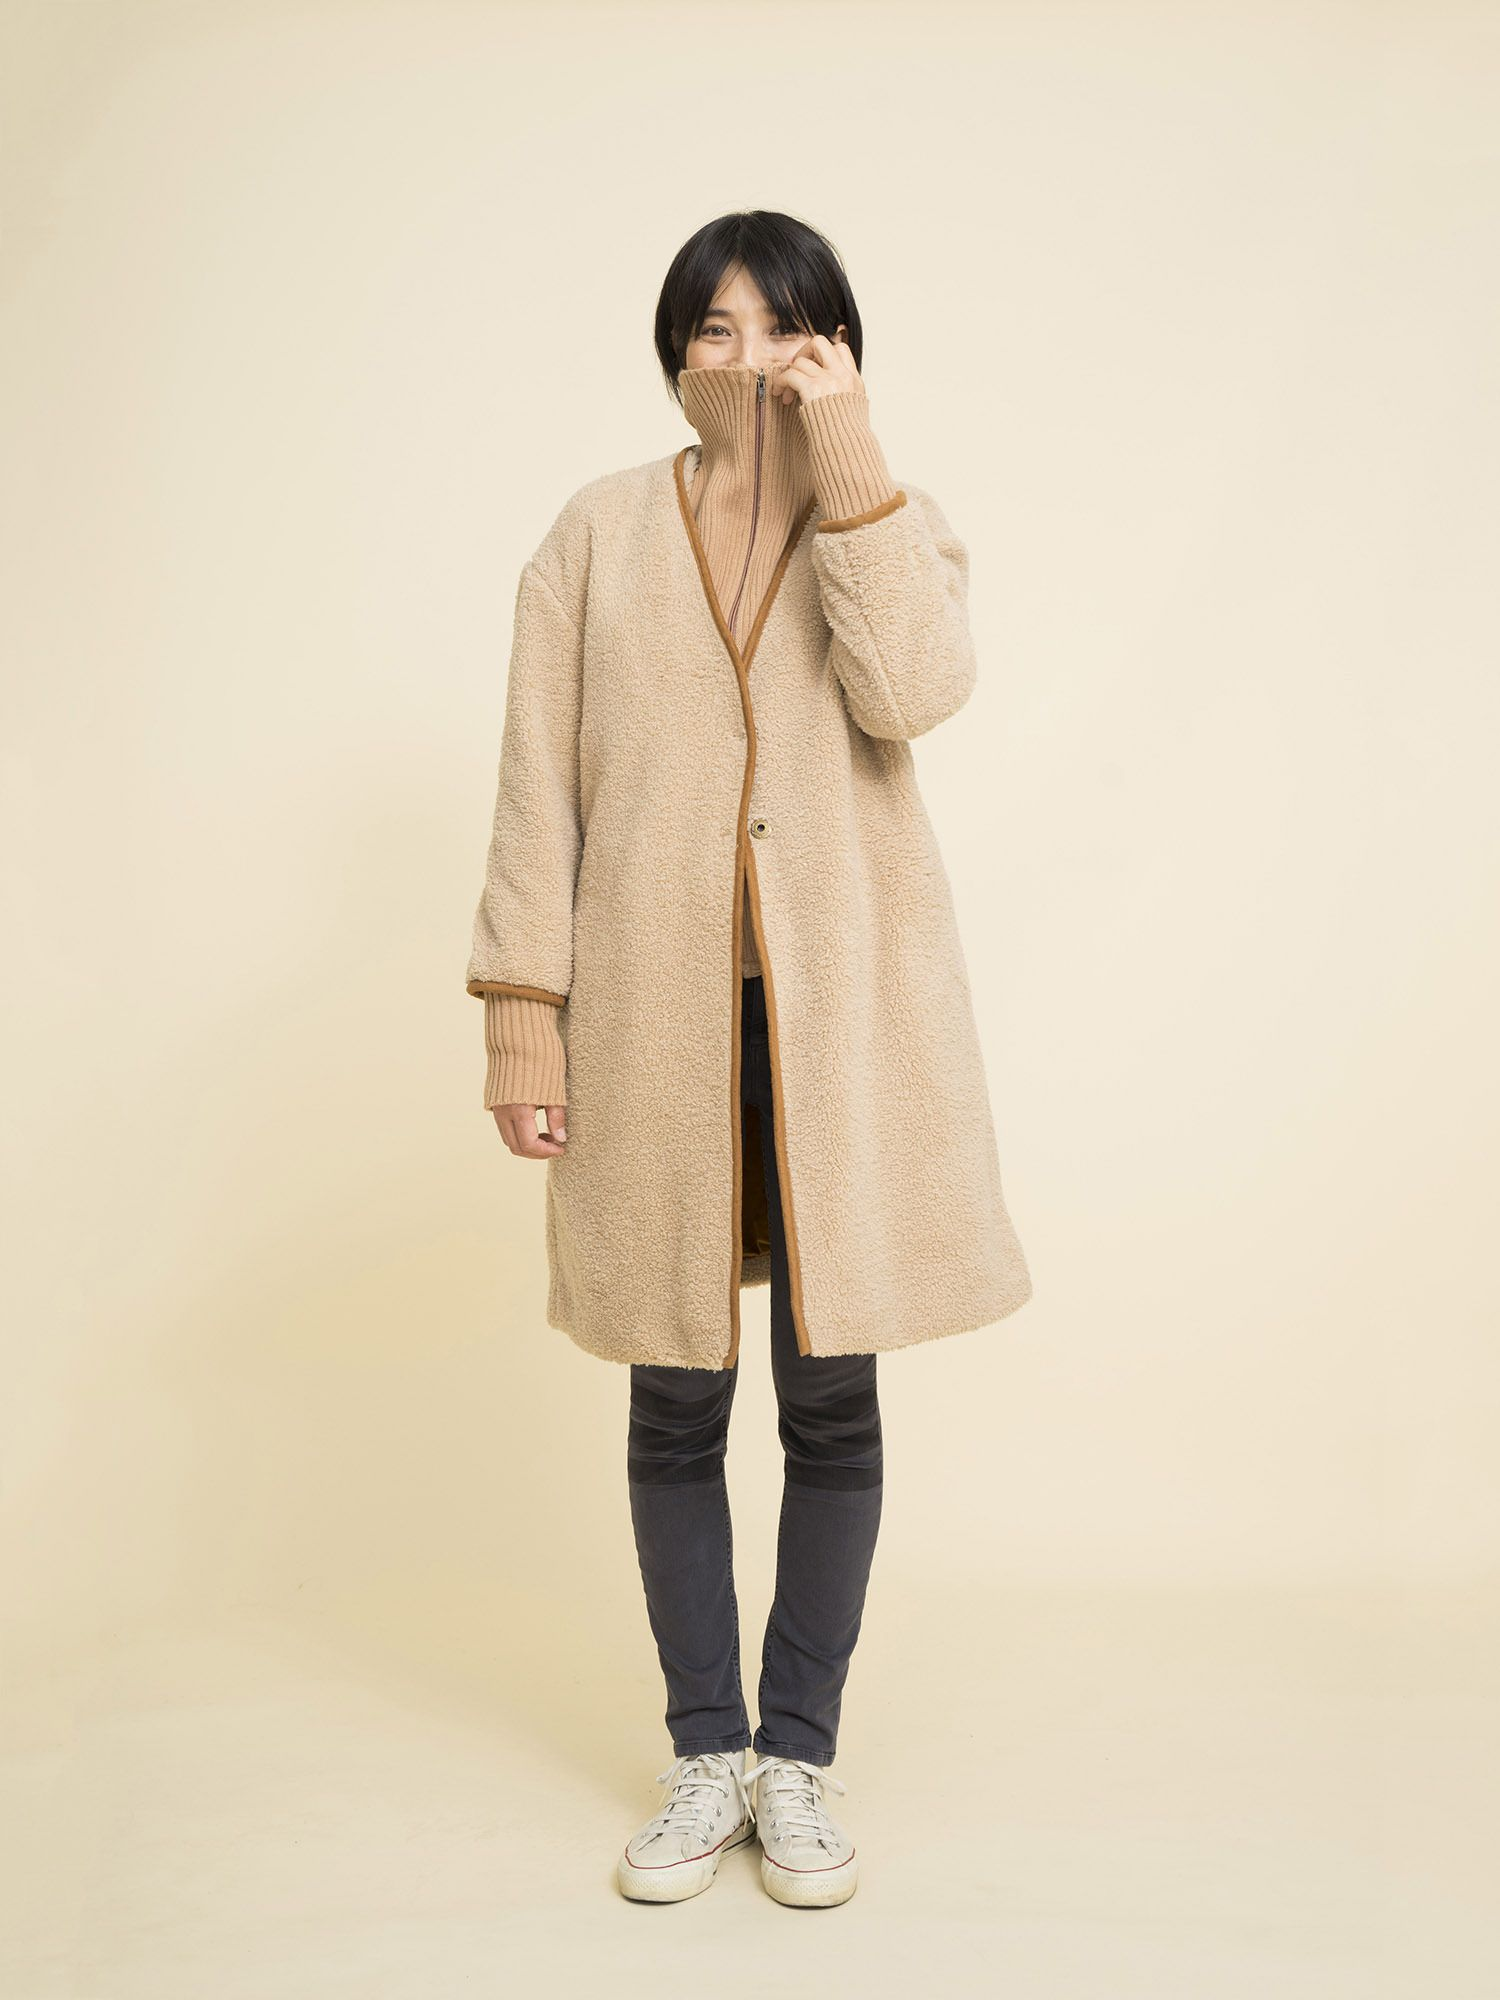 Sheep Skin Coat | Coat, How to wear, Normcore